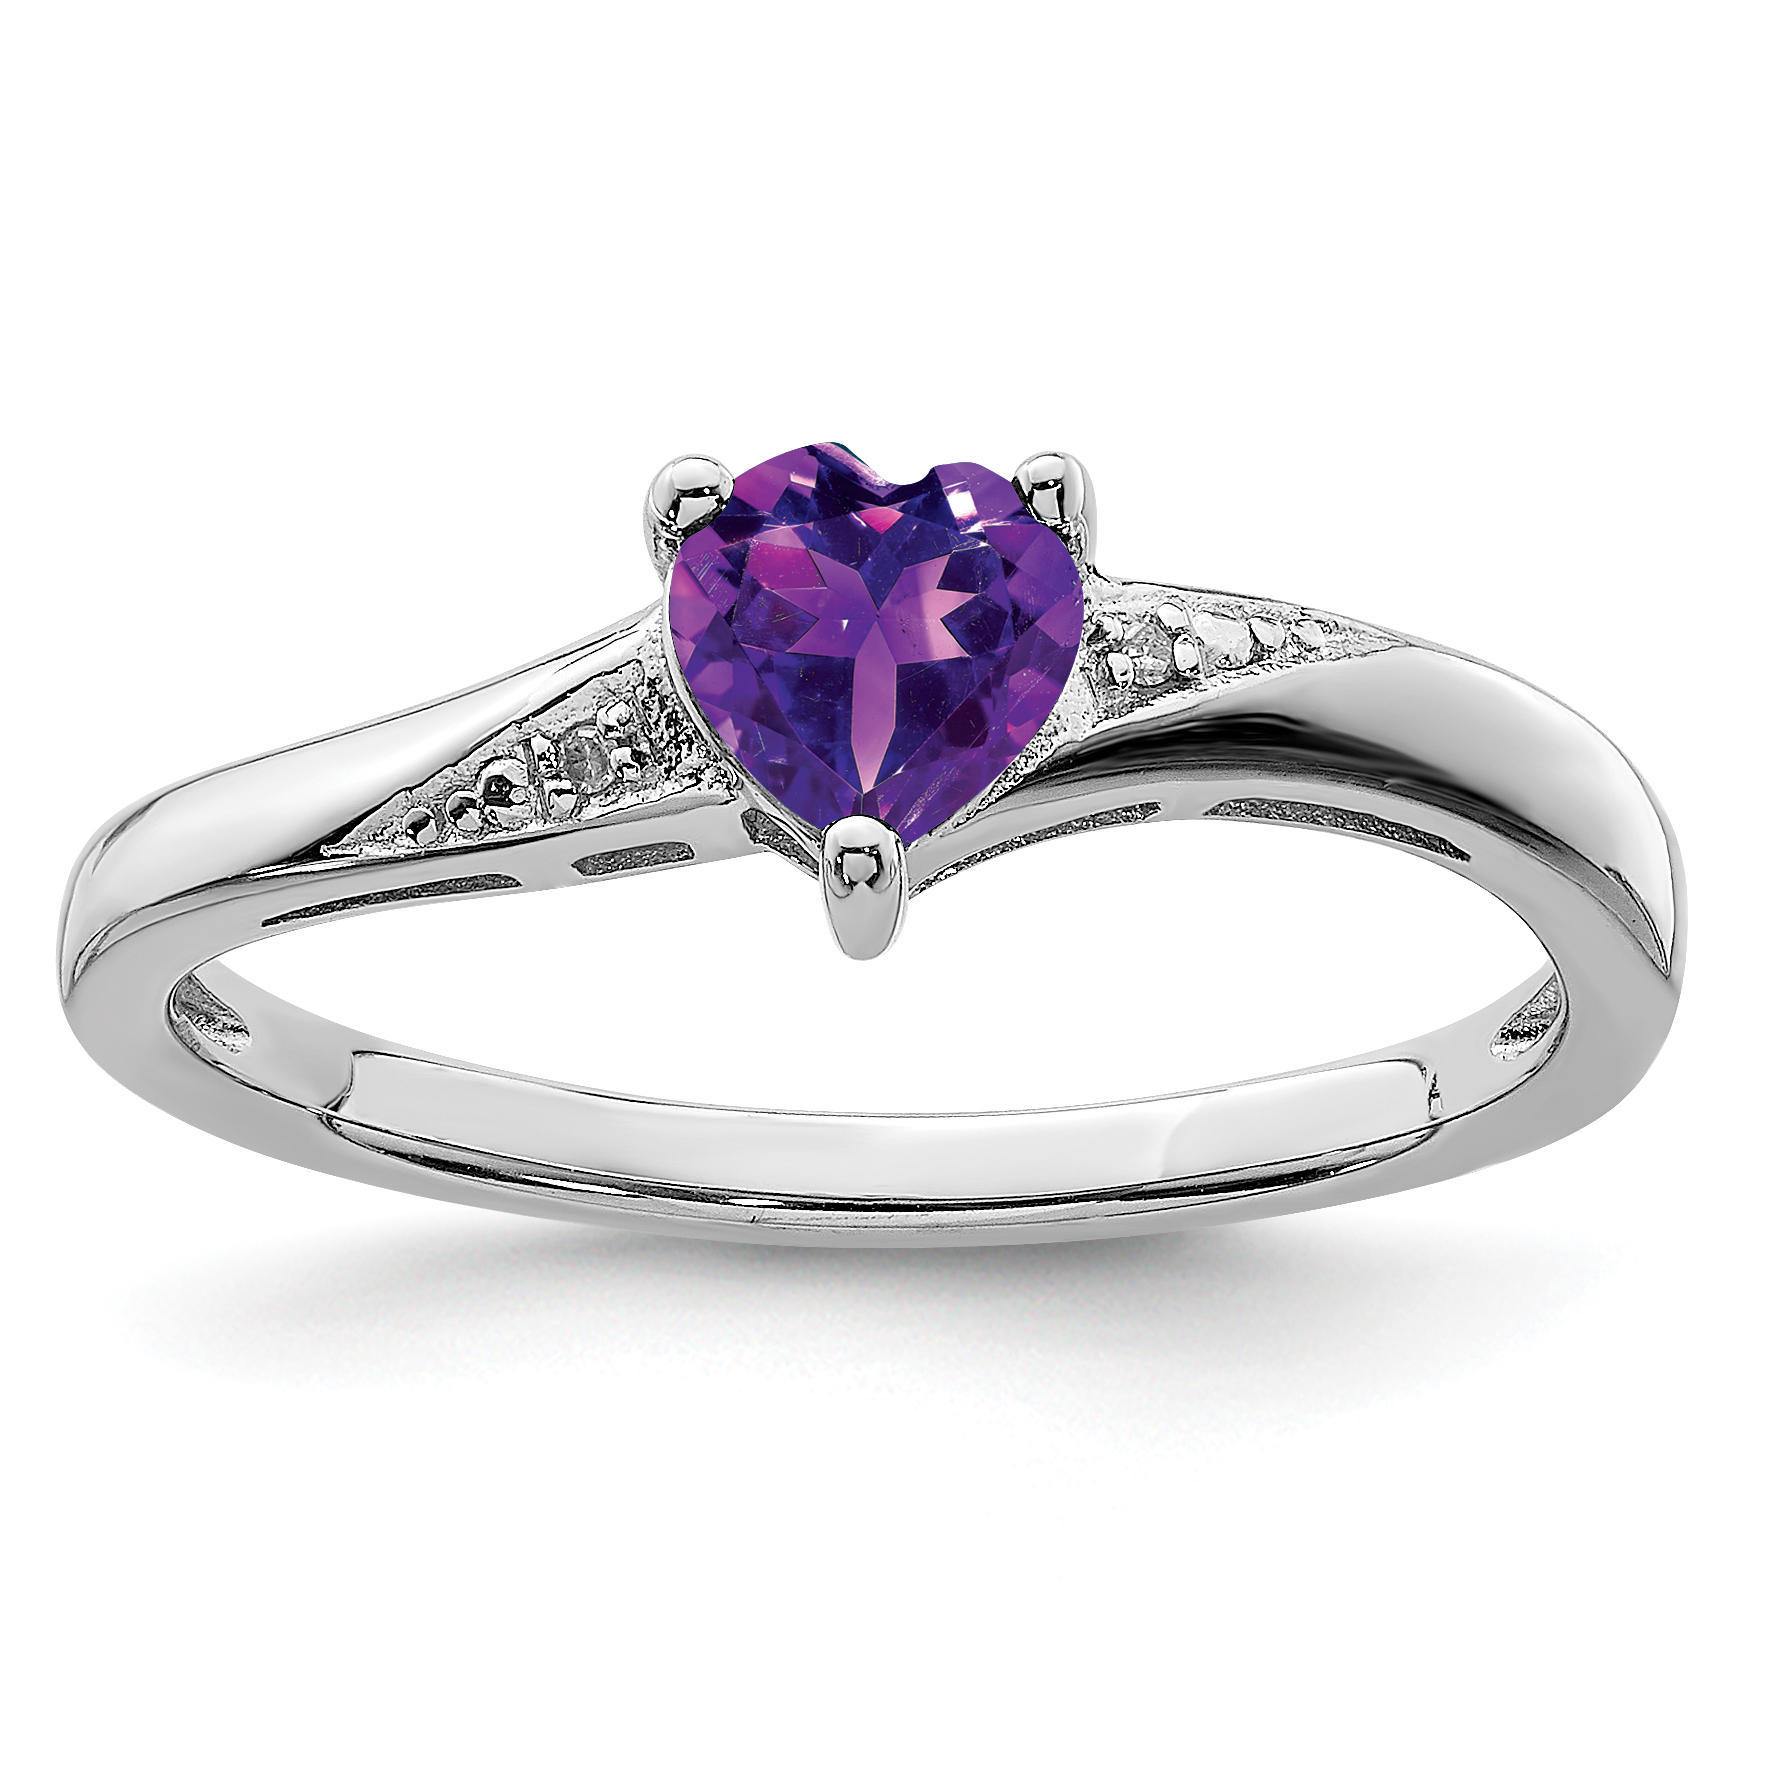 Sterling Silver Rhodium Plated Amethyst and Diamond Ring QR4645AM